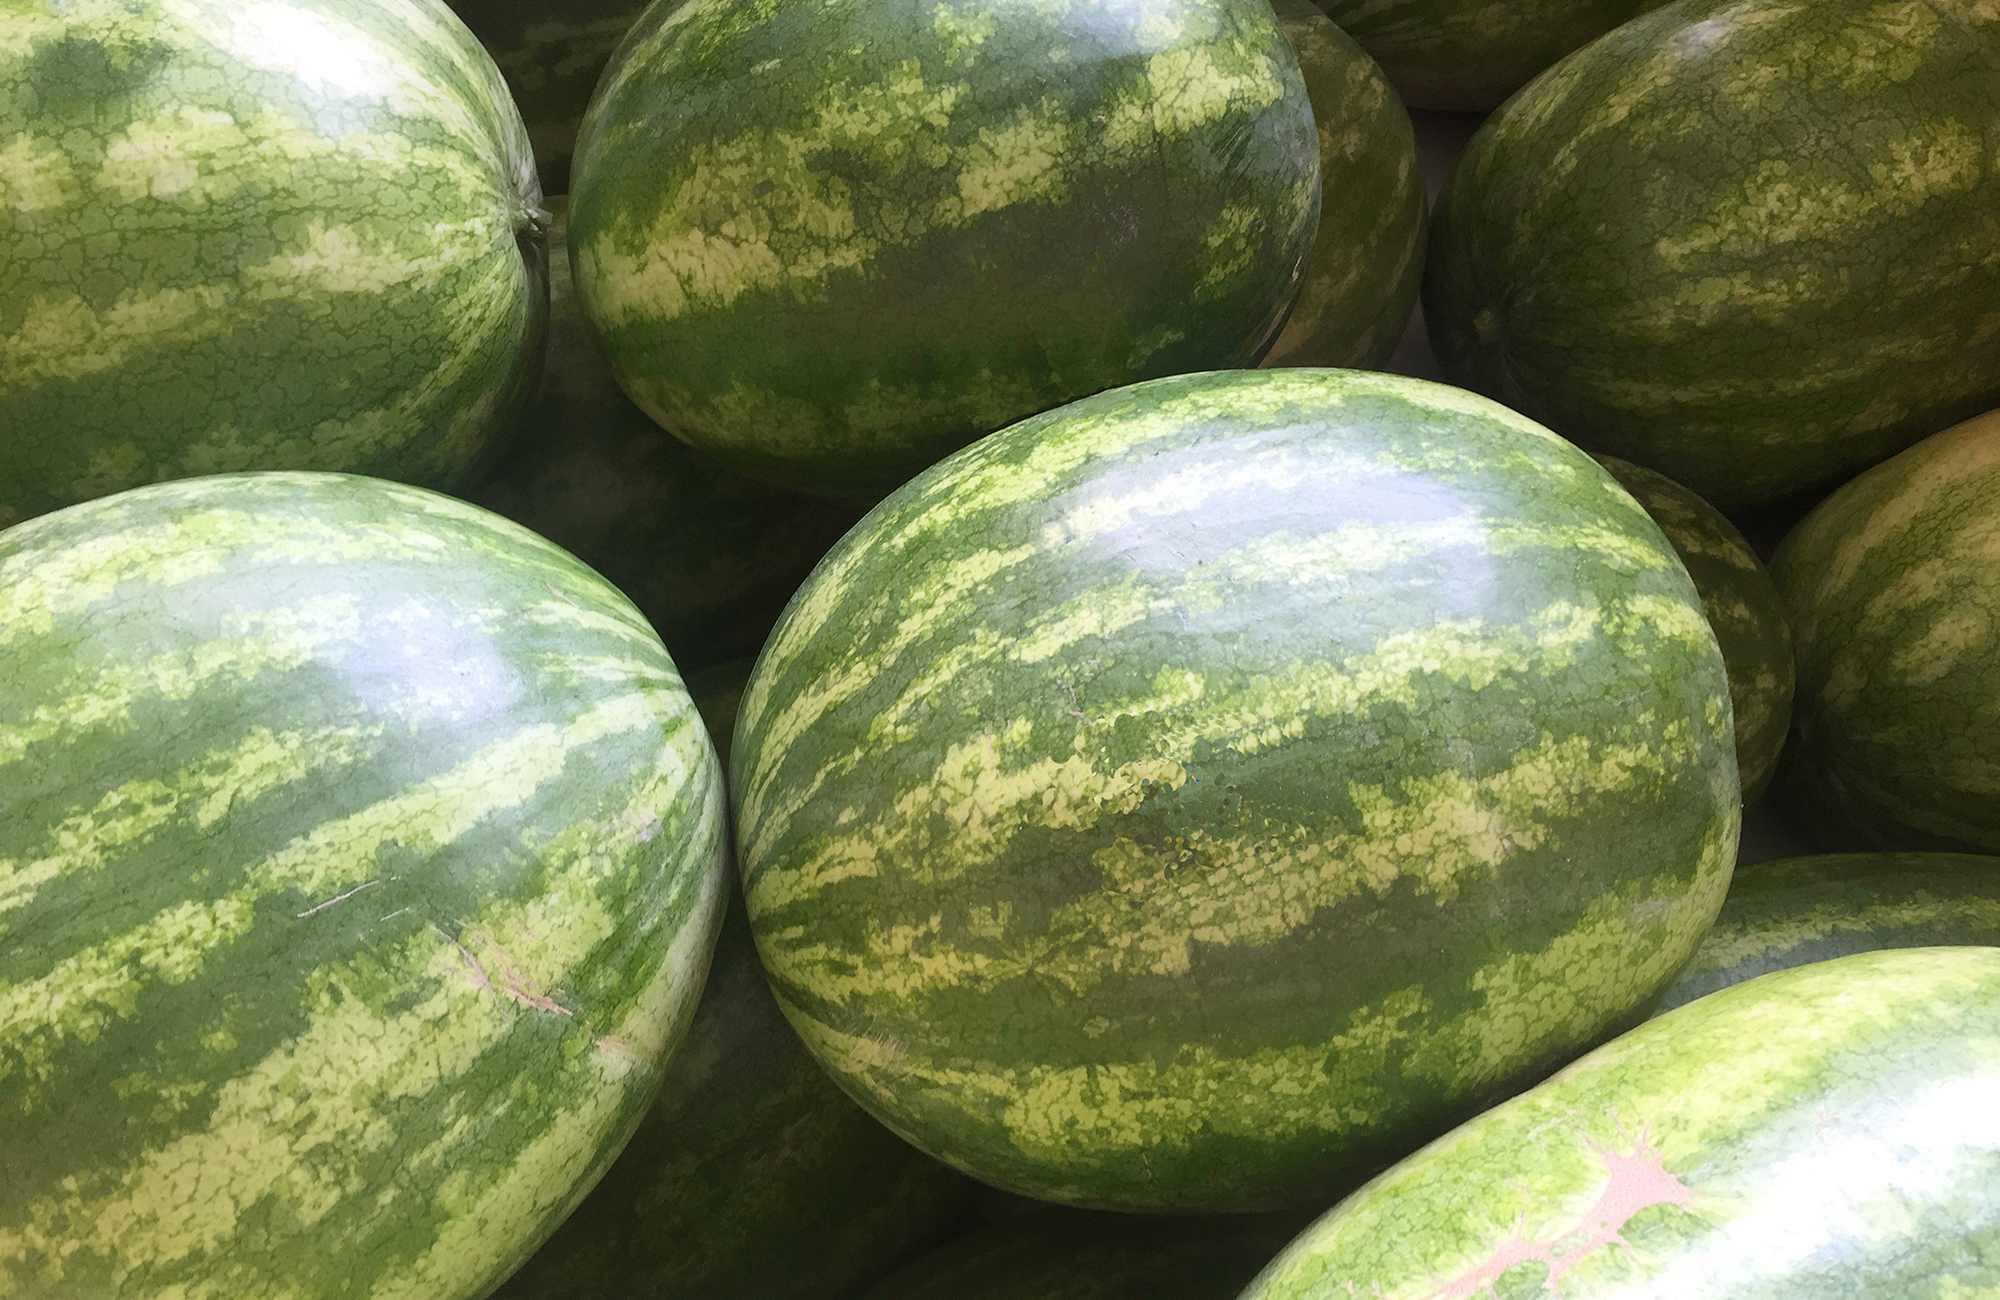 Picture of fresh watermelons